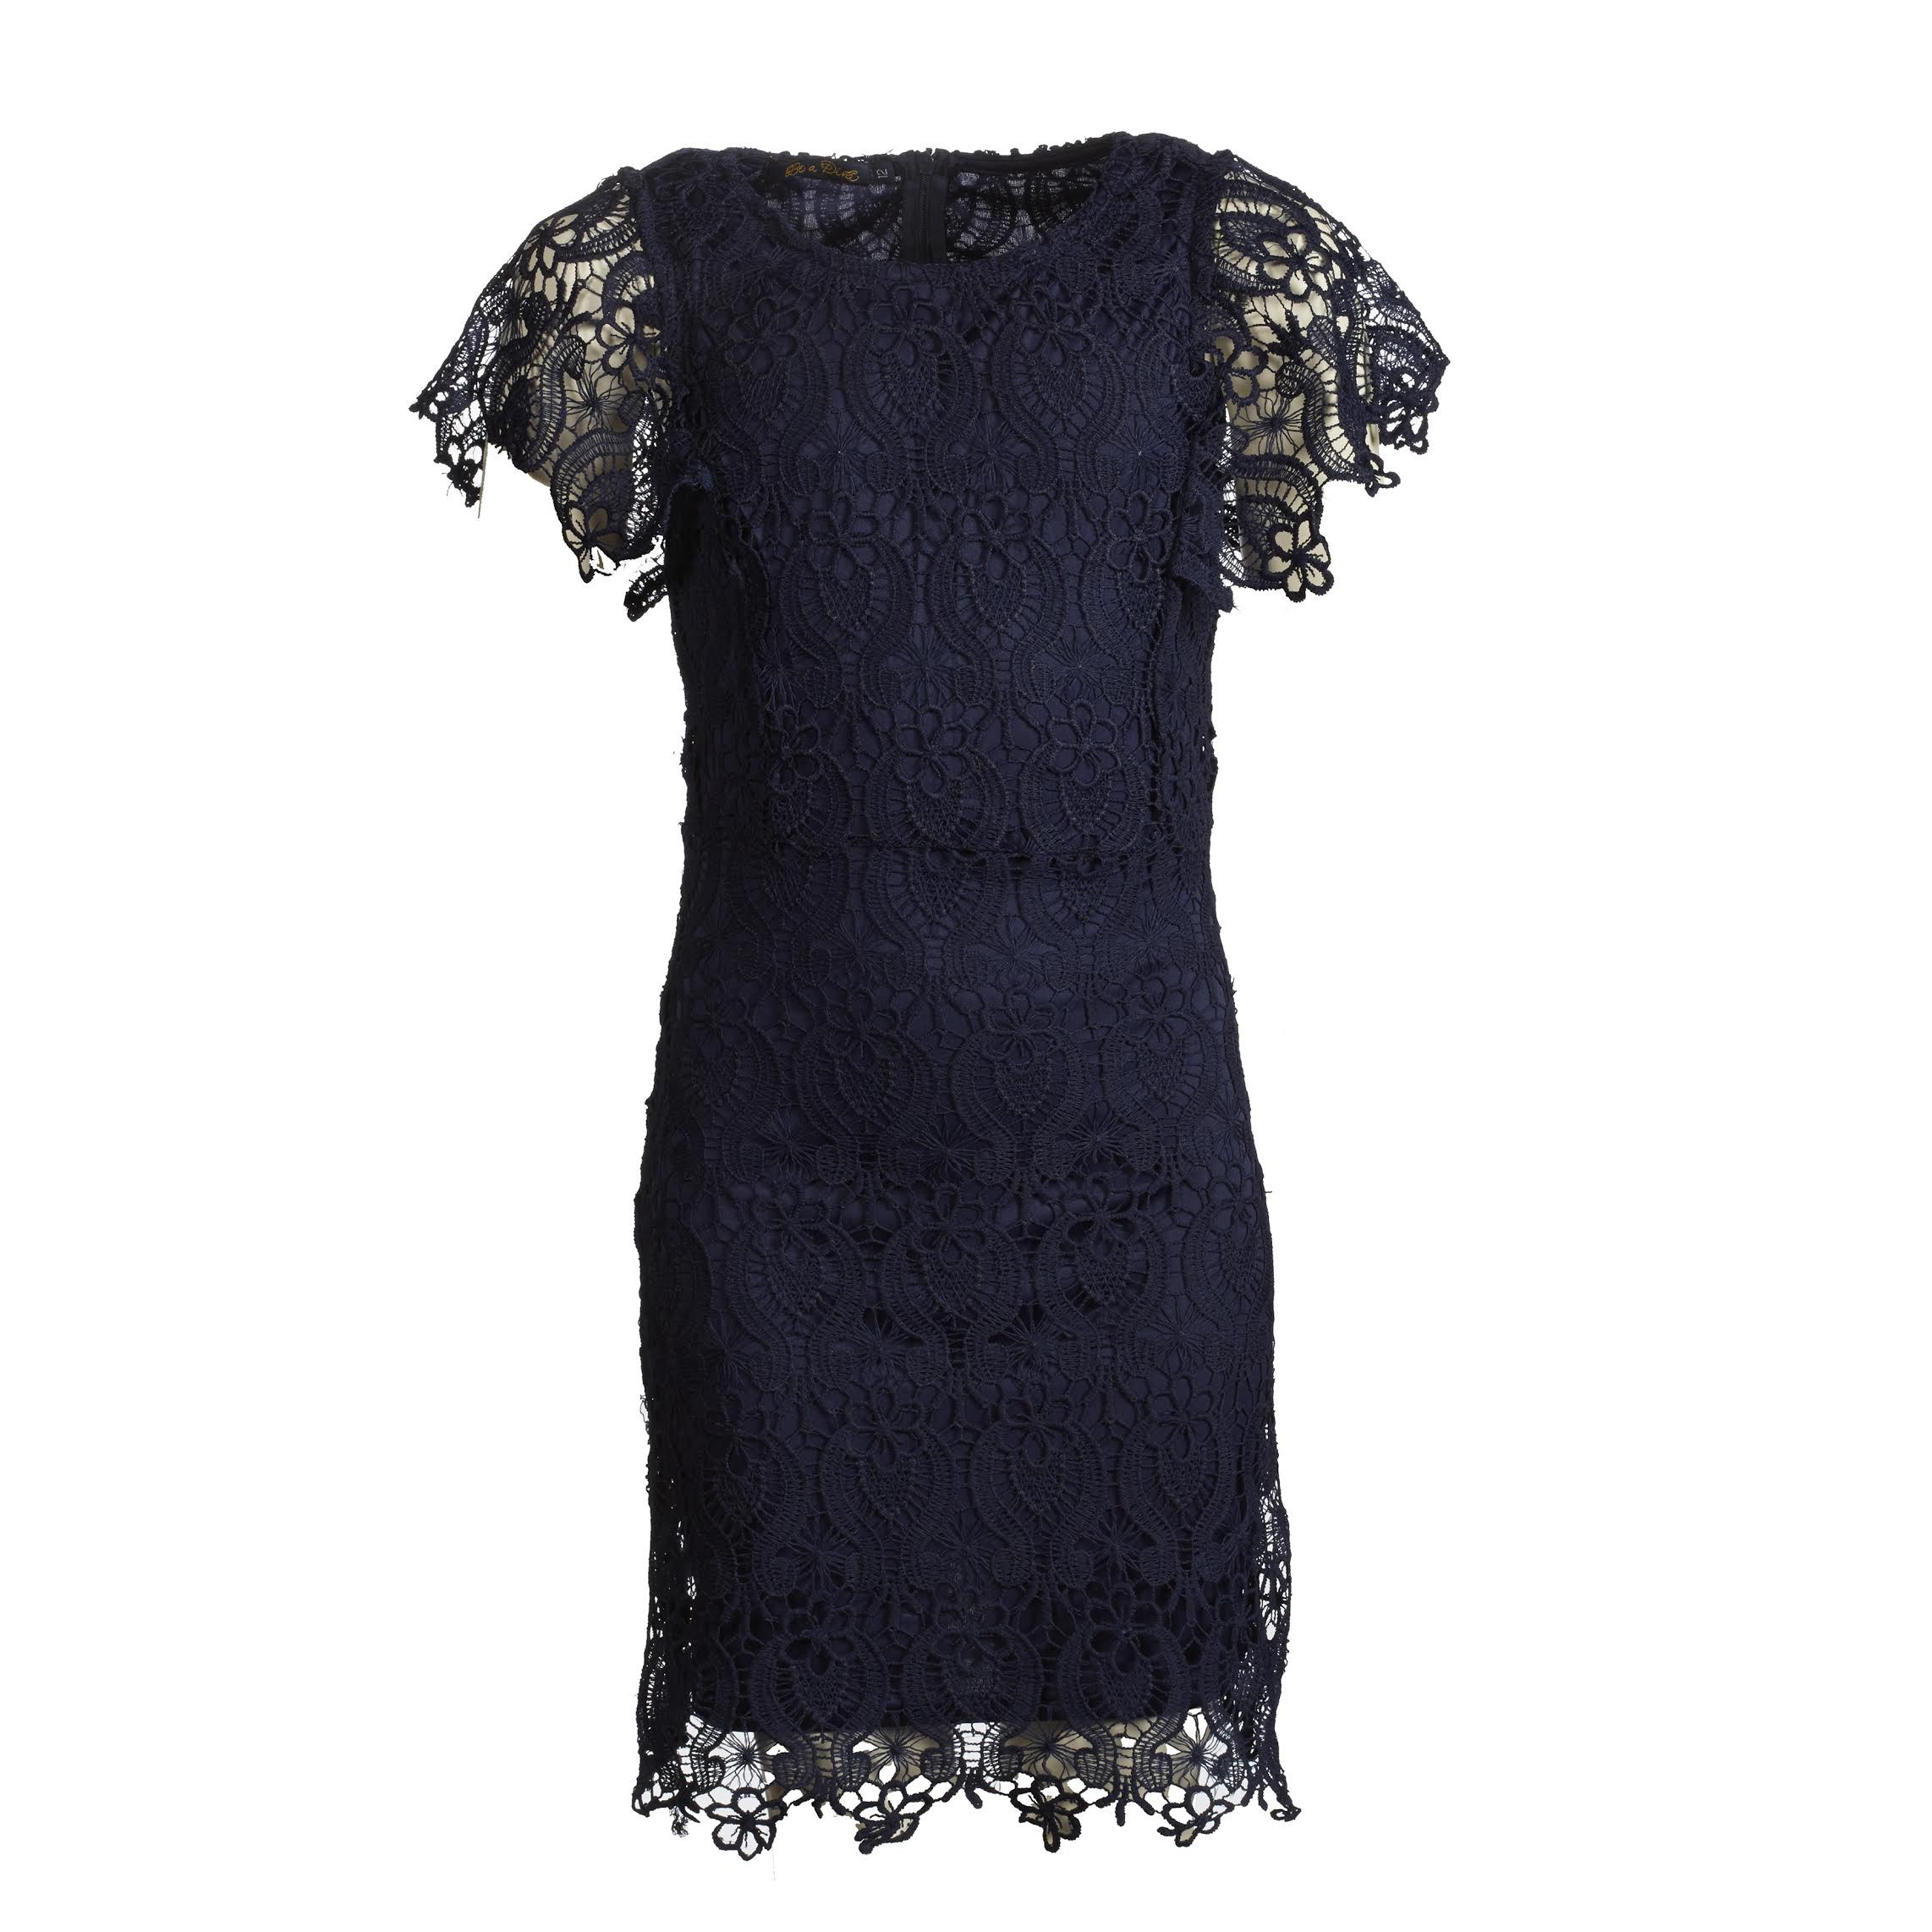 You just got to love the lace - Dress Kourtney